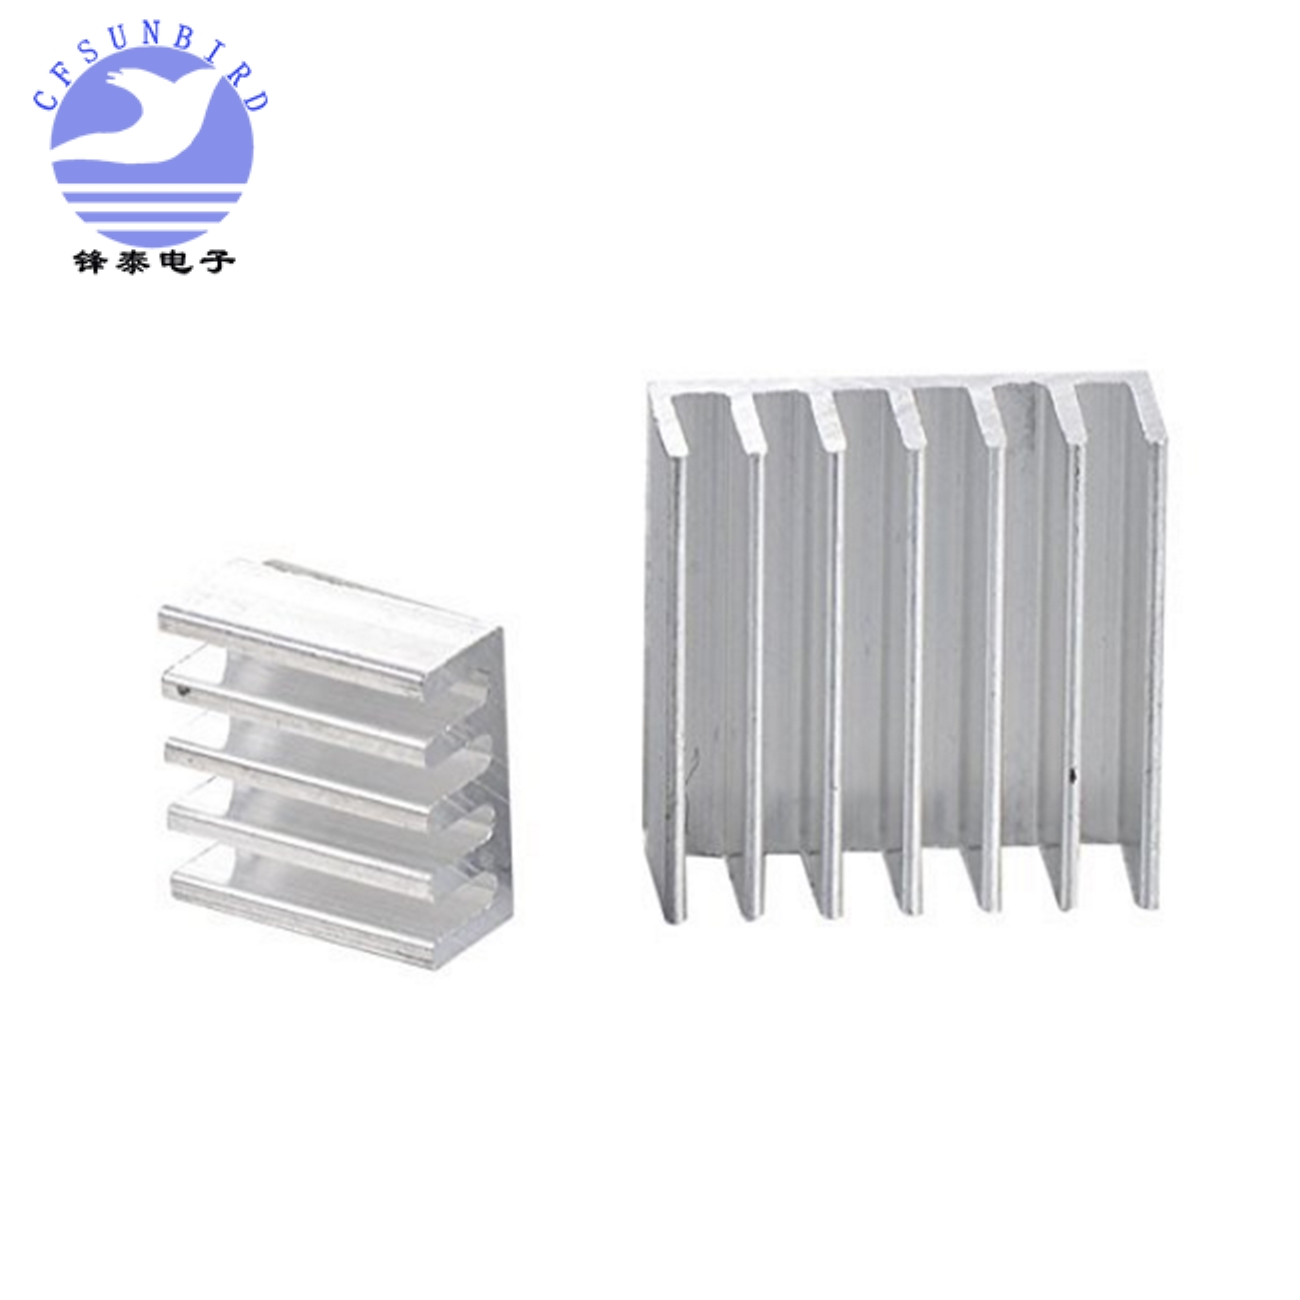 3Pcs//Set Aluminum Heatsink Cooler Adhesive Kits For Cooling Raspberry Pi Useful